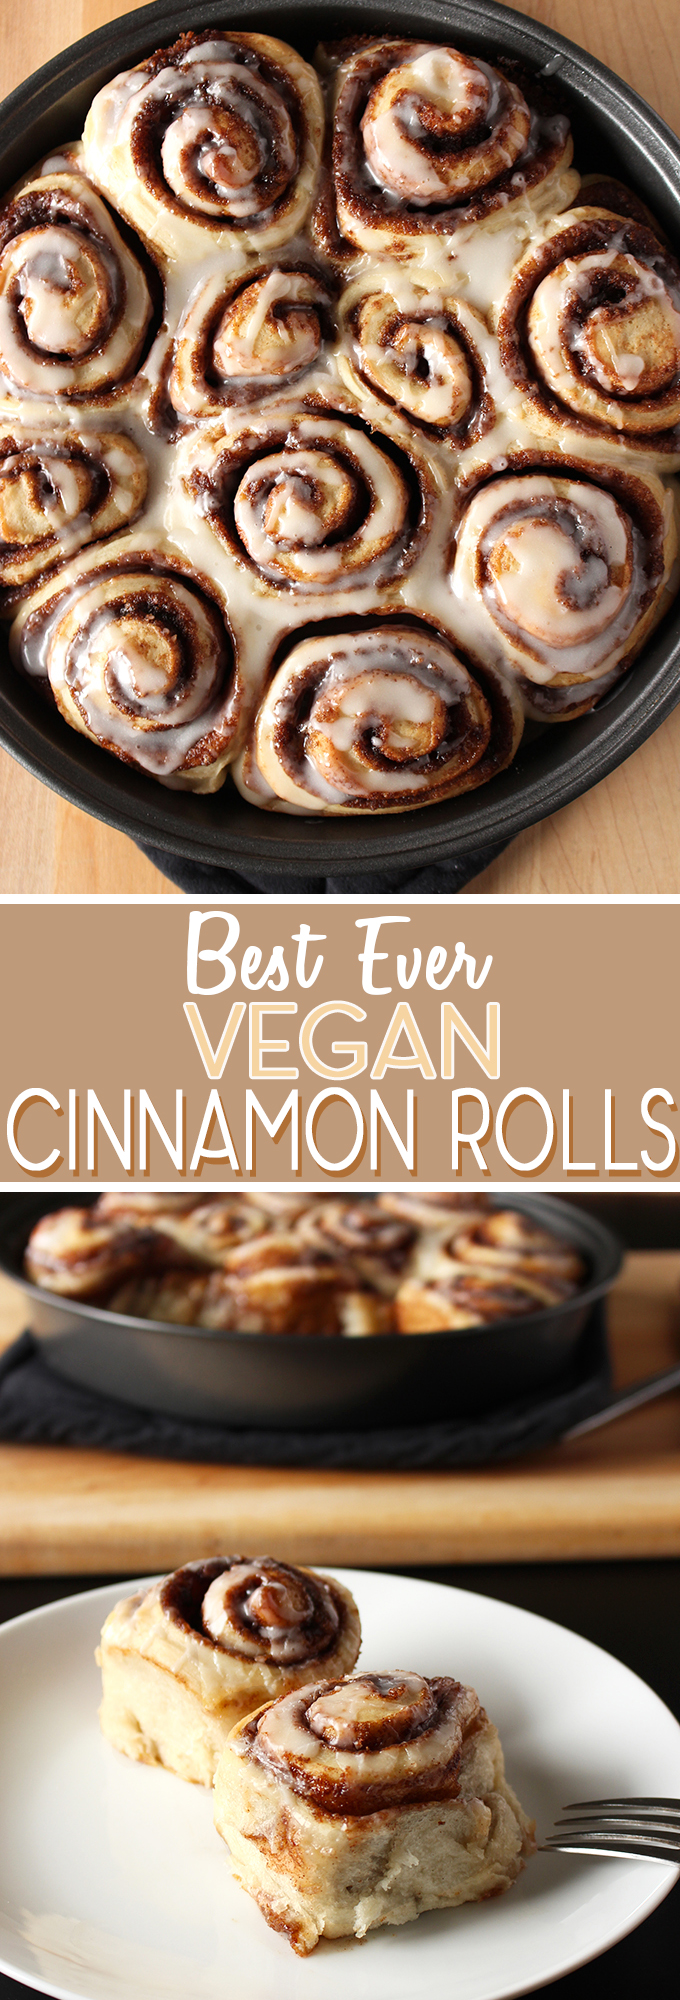 Best Ever Vegan Cinnamon Rolls